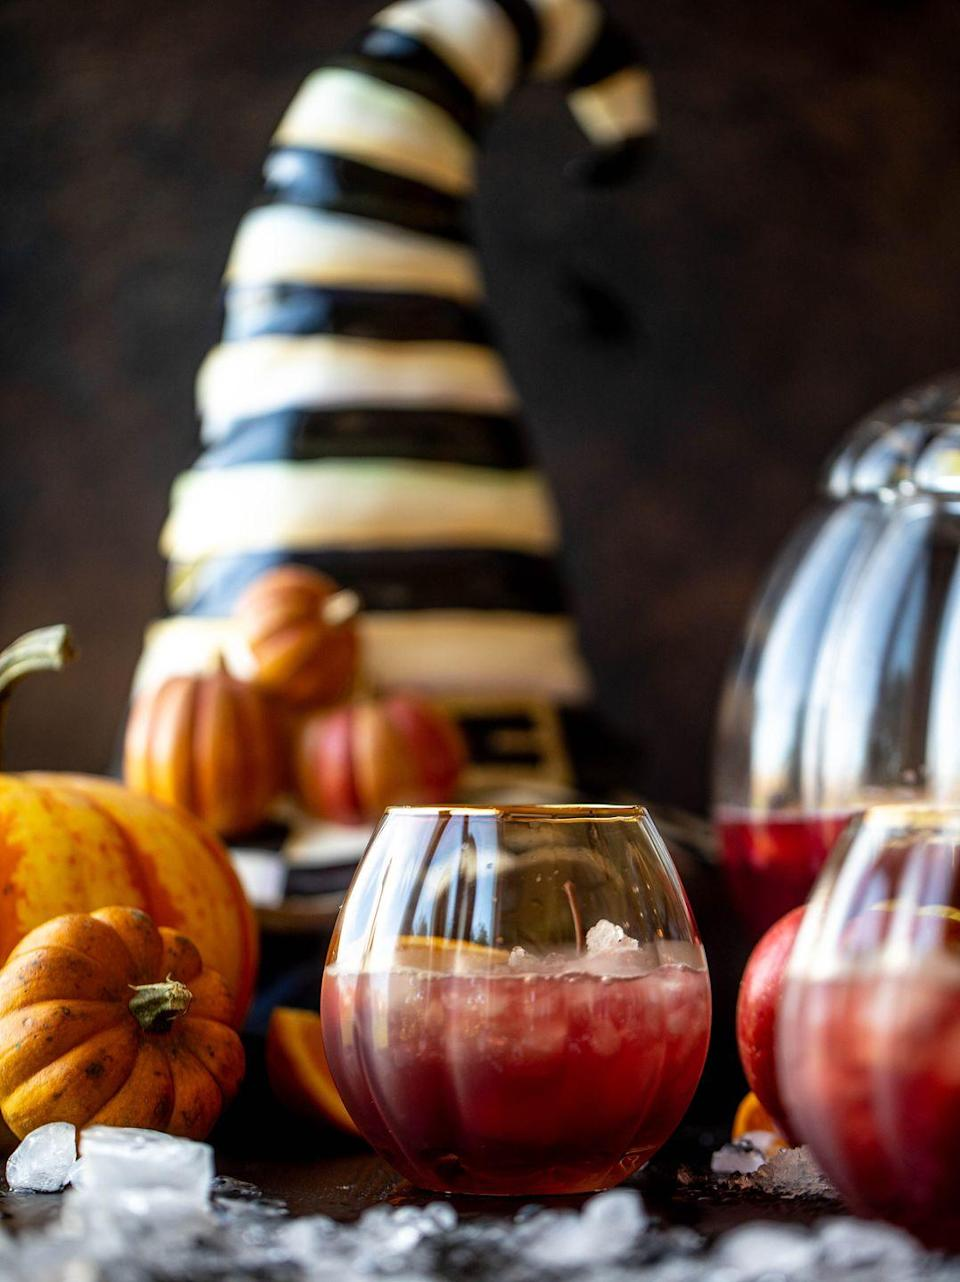 """<p>This Halloween punch is actually a mocktail, so everyone can get in on the fun! It's a sparkling drink that's full of flavor from cider, orange, and cranberry. </p><p><strong>Get the recipe at <a href=""""https://www.howsweeteats.com/2019/10/hocus-pocus-punch-p-s-its-a-mocktail/"""" rel=""""nofollow noopener"""" target=""""_blank"""" data-ylk=""""slk:How Sweet Eats"""" class=""""link rapid-noclick-resp"""">How Sweet Eats</a>. </strong></p><p><a class=""""link rapid-noclick-resp"""" href=""""https://go.redirectingat.com?id=74968X1596630&url=https%3A%2F%2Fwww.walmart.com%2Fsearch%2F%3Fquery%3Dpunch%2Bbowls&sref=https%3A%2F%2Fwww.thepioneerwoman.com%2Fholidays-celebrations%2Fg36982659%2Fhalloween-drink-recipes%2F"""" rel=""""nofollow noopener"""" target=""""_blank"""" data-ylk=""""slk:SHOP PUNCH BOWLS"""">SHOP PUNCH BOWLS</a></p>"""